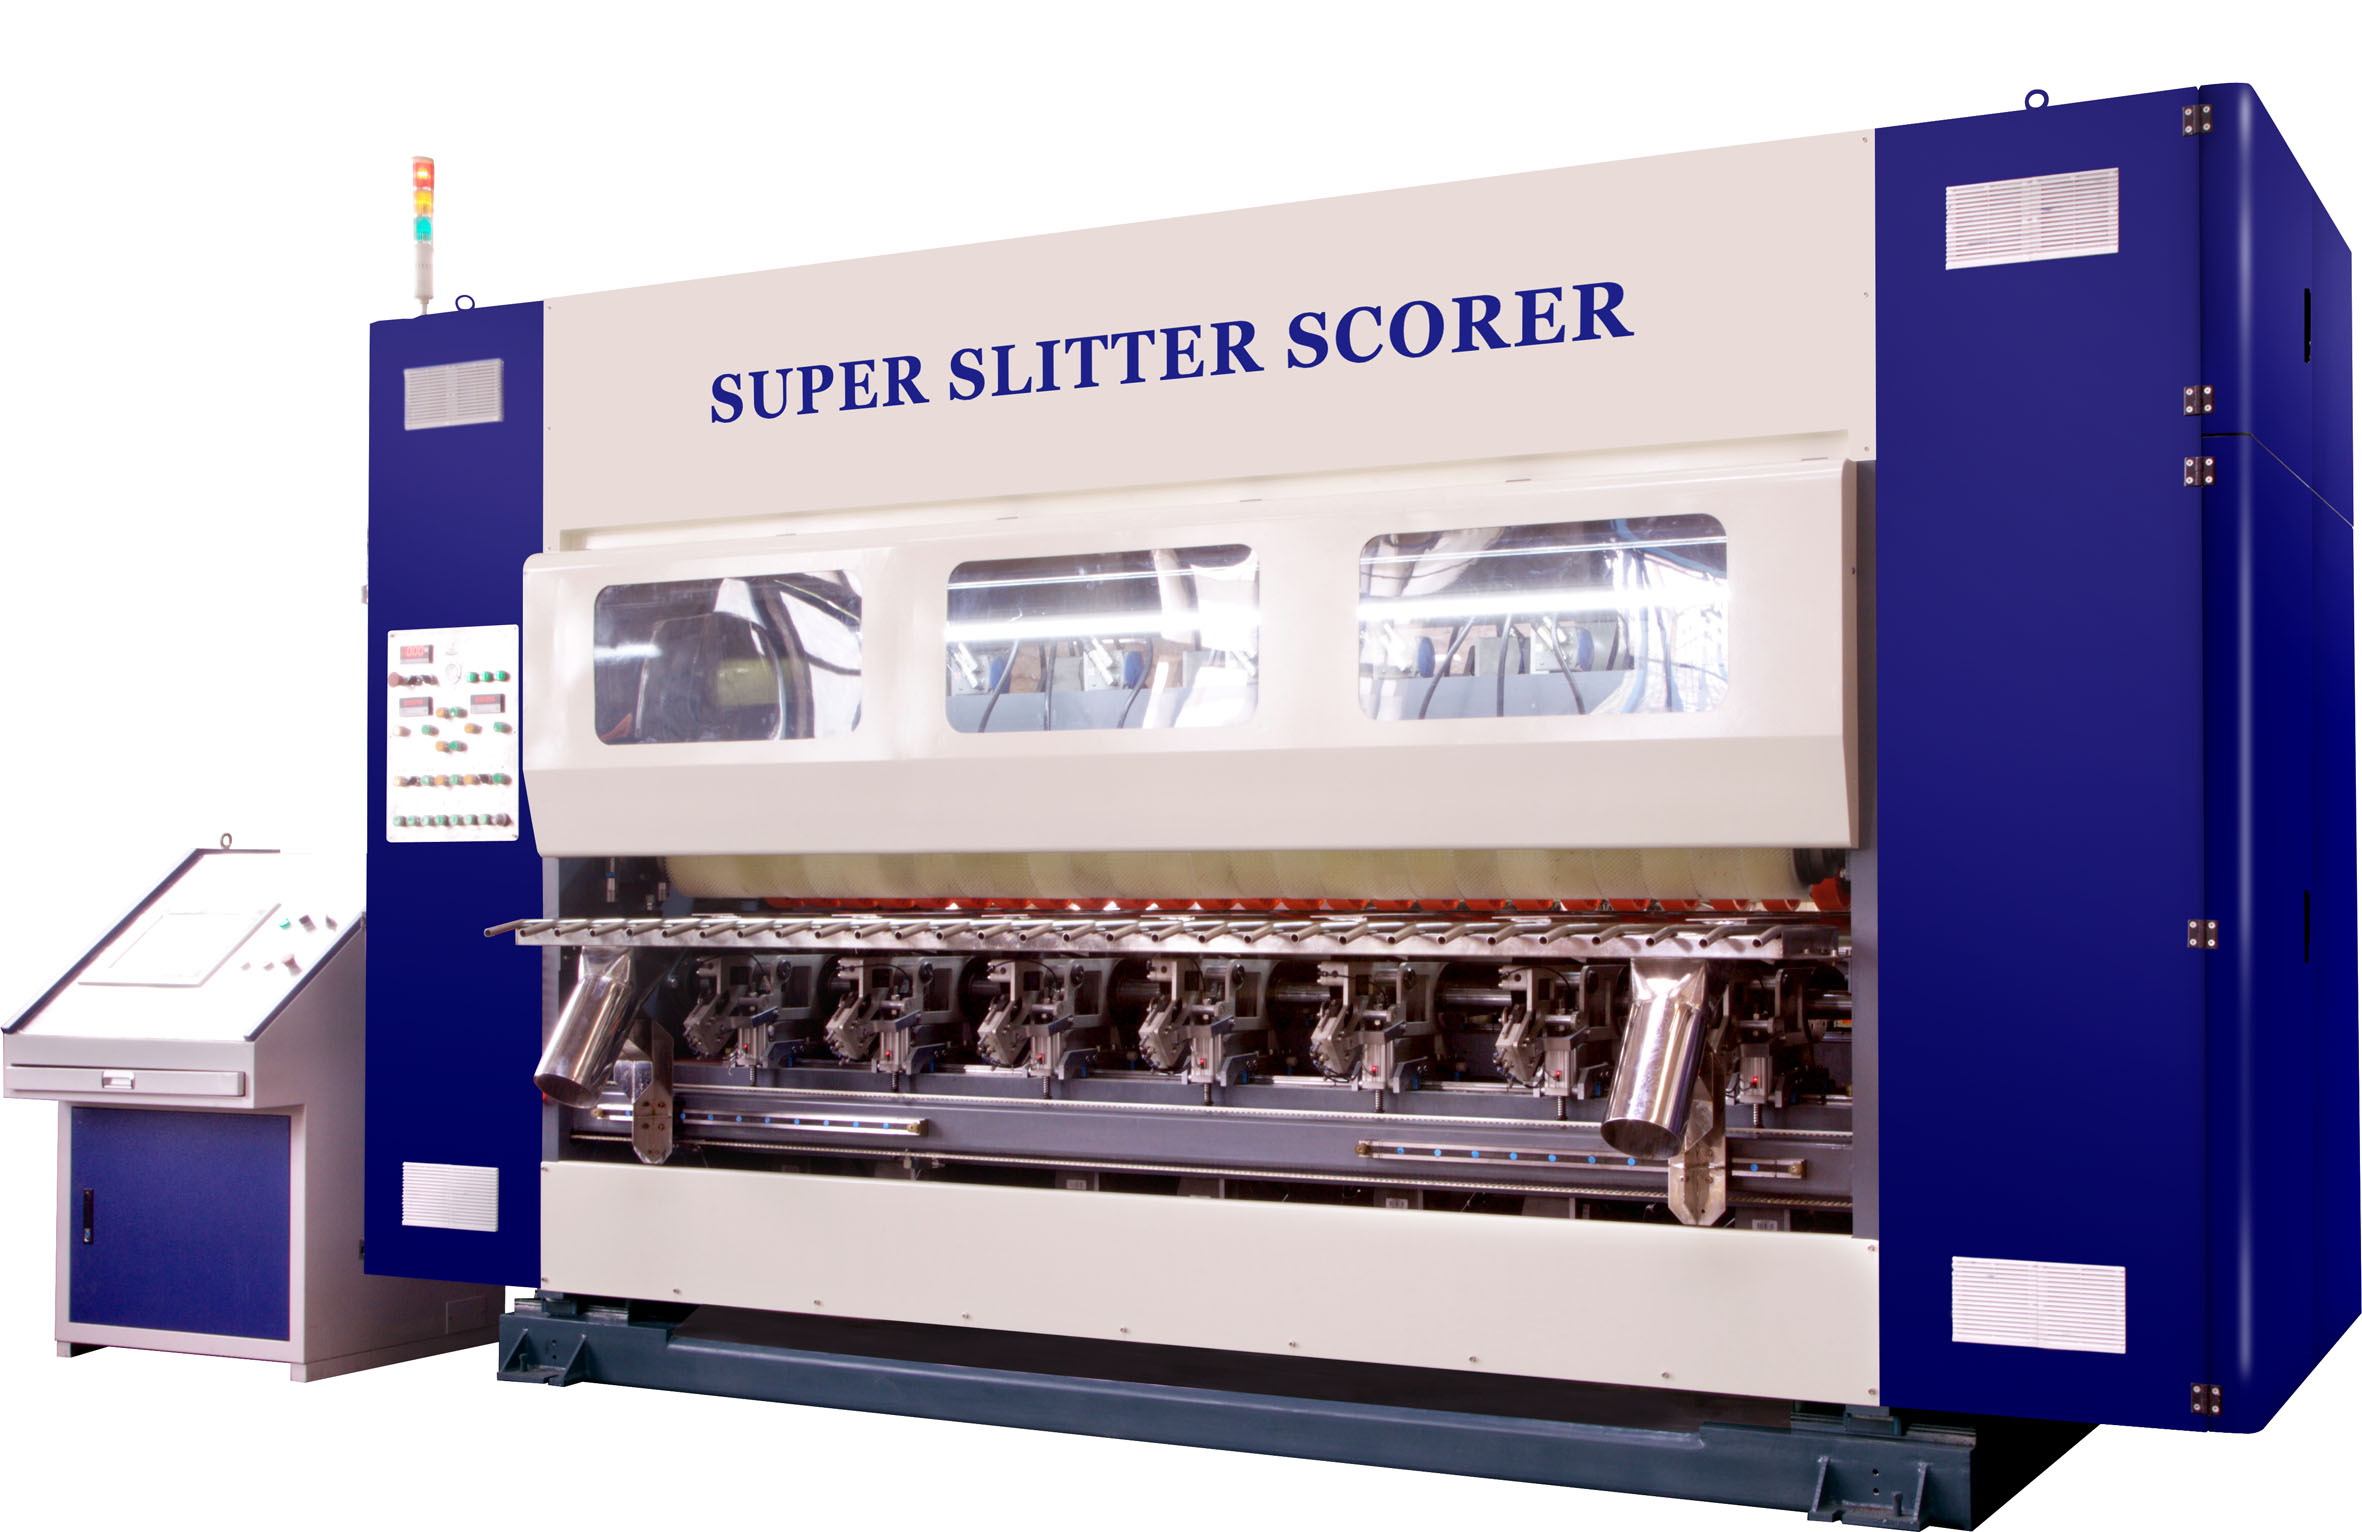 HIGH-END COMPUTER-CONTROLLED SLITTER SCORER